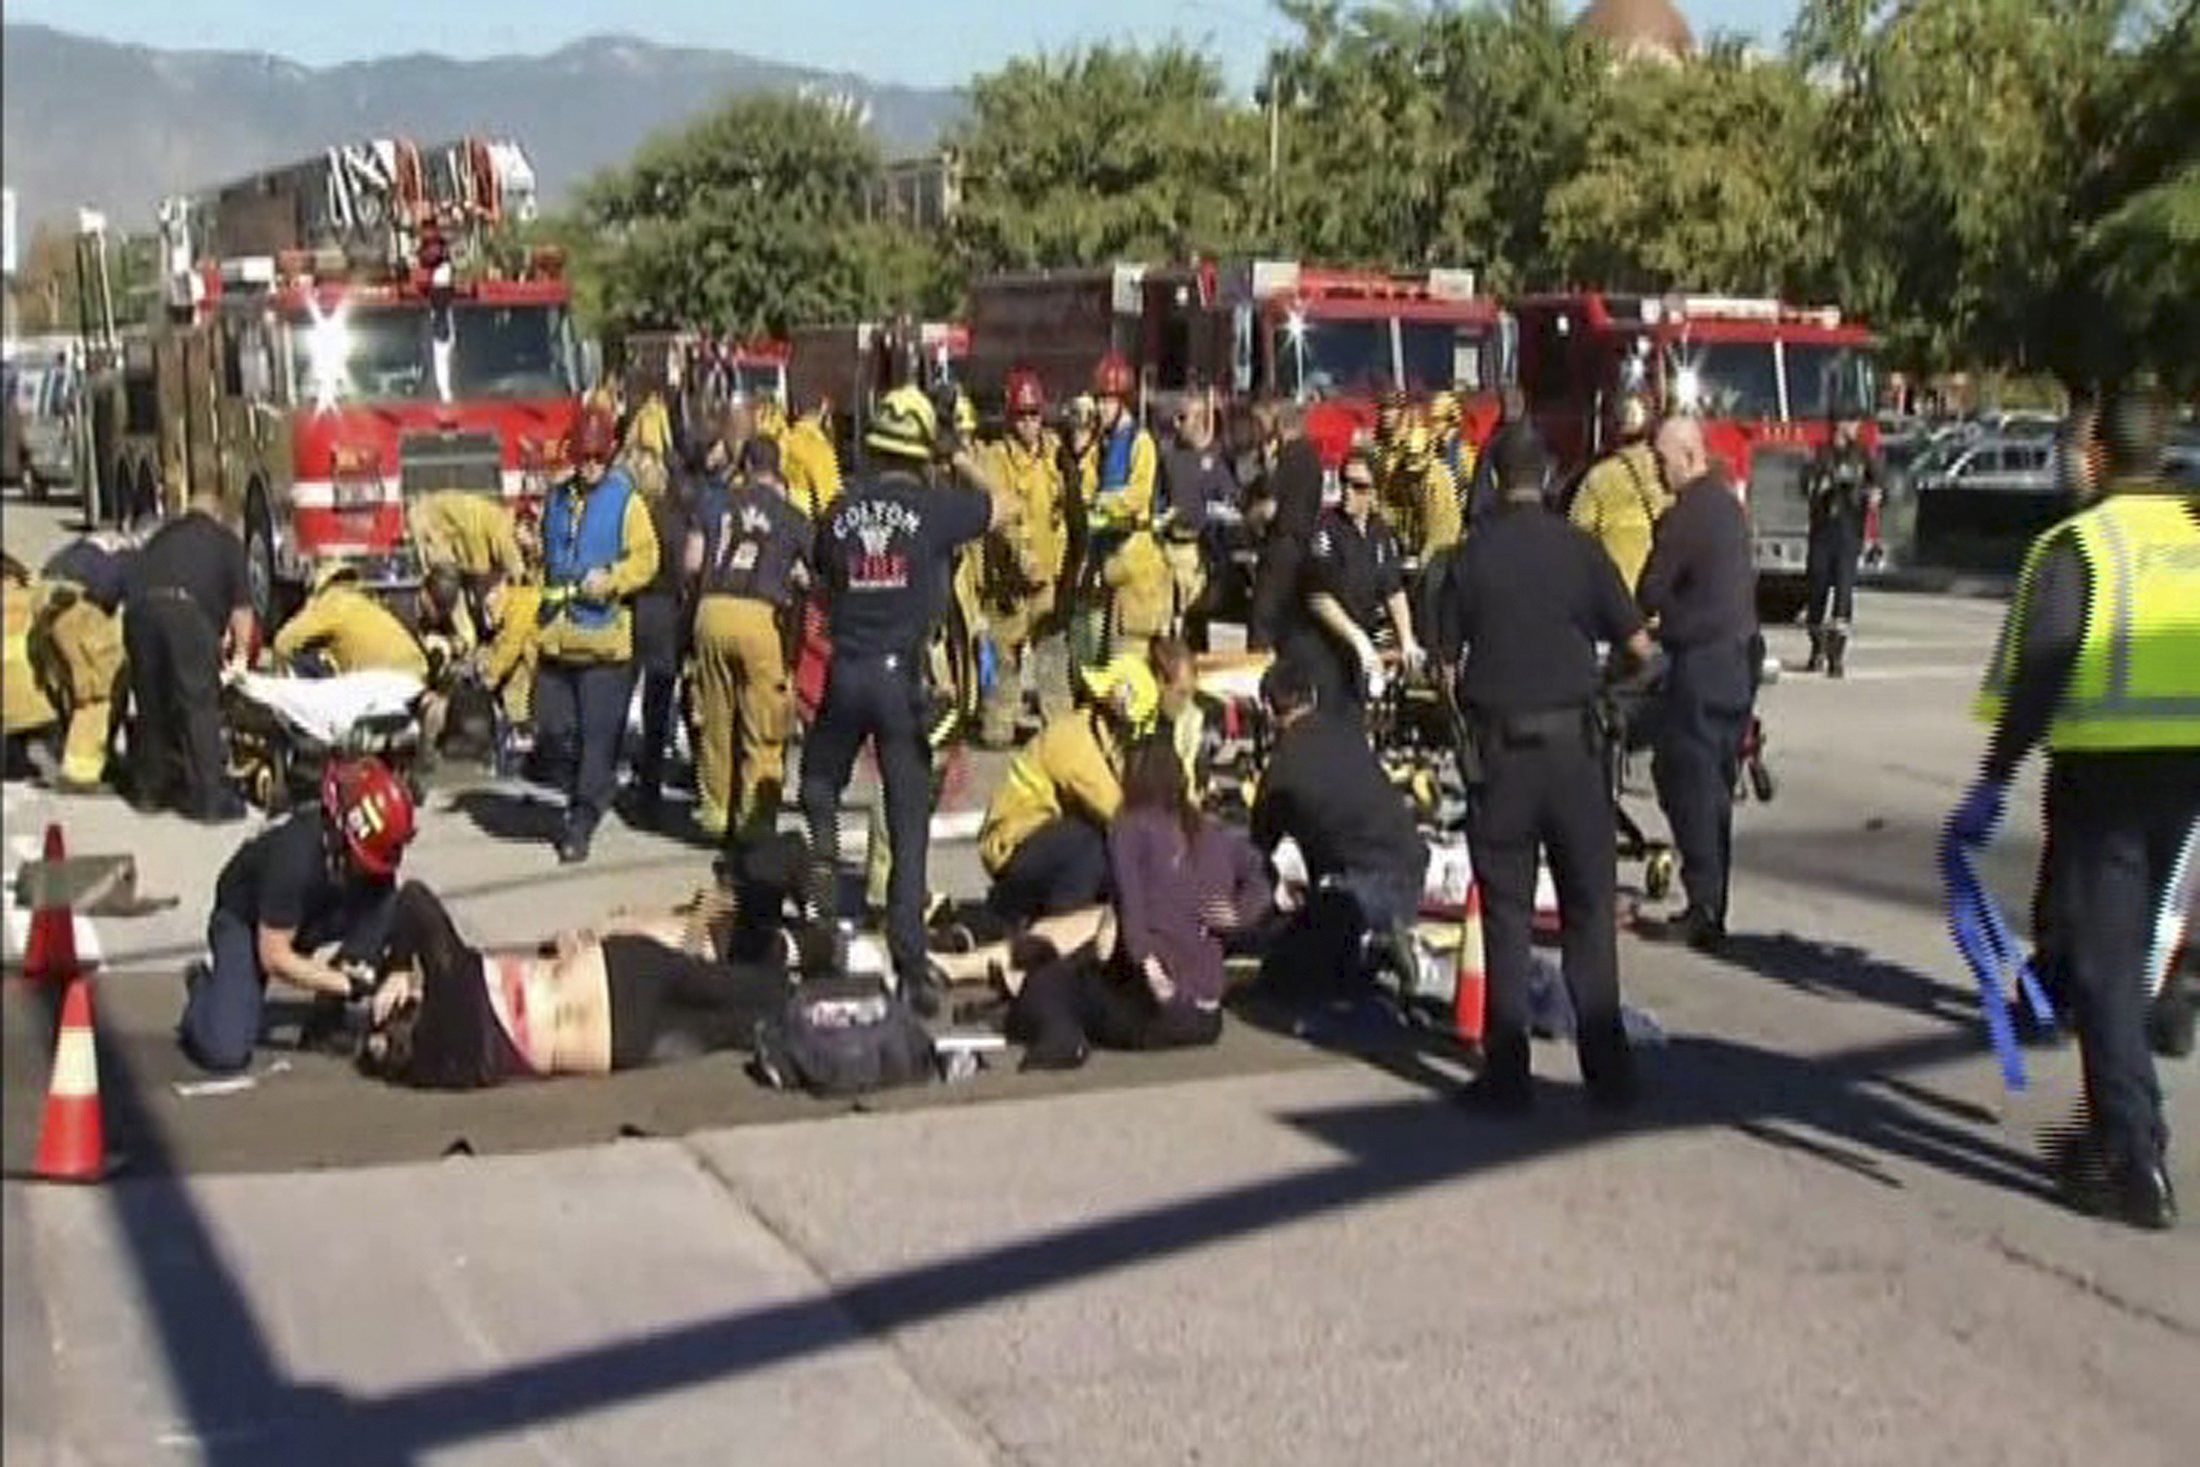 Still from video shows rescue crews tending to the injured in the intersection outside the Inland Regional Center in San Bernardino